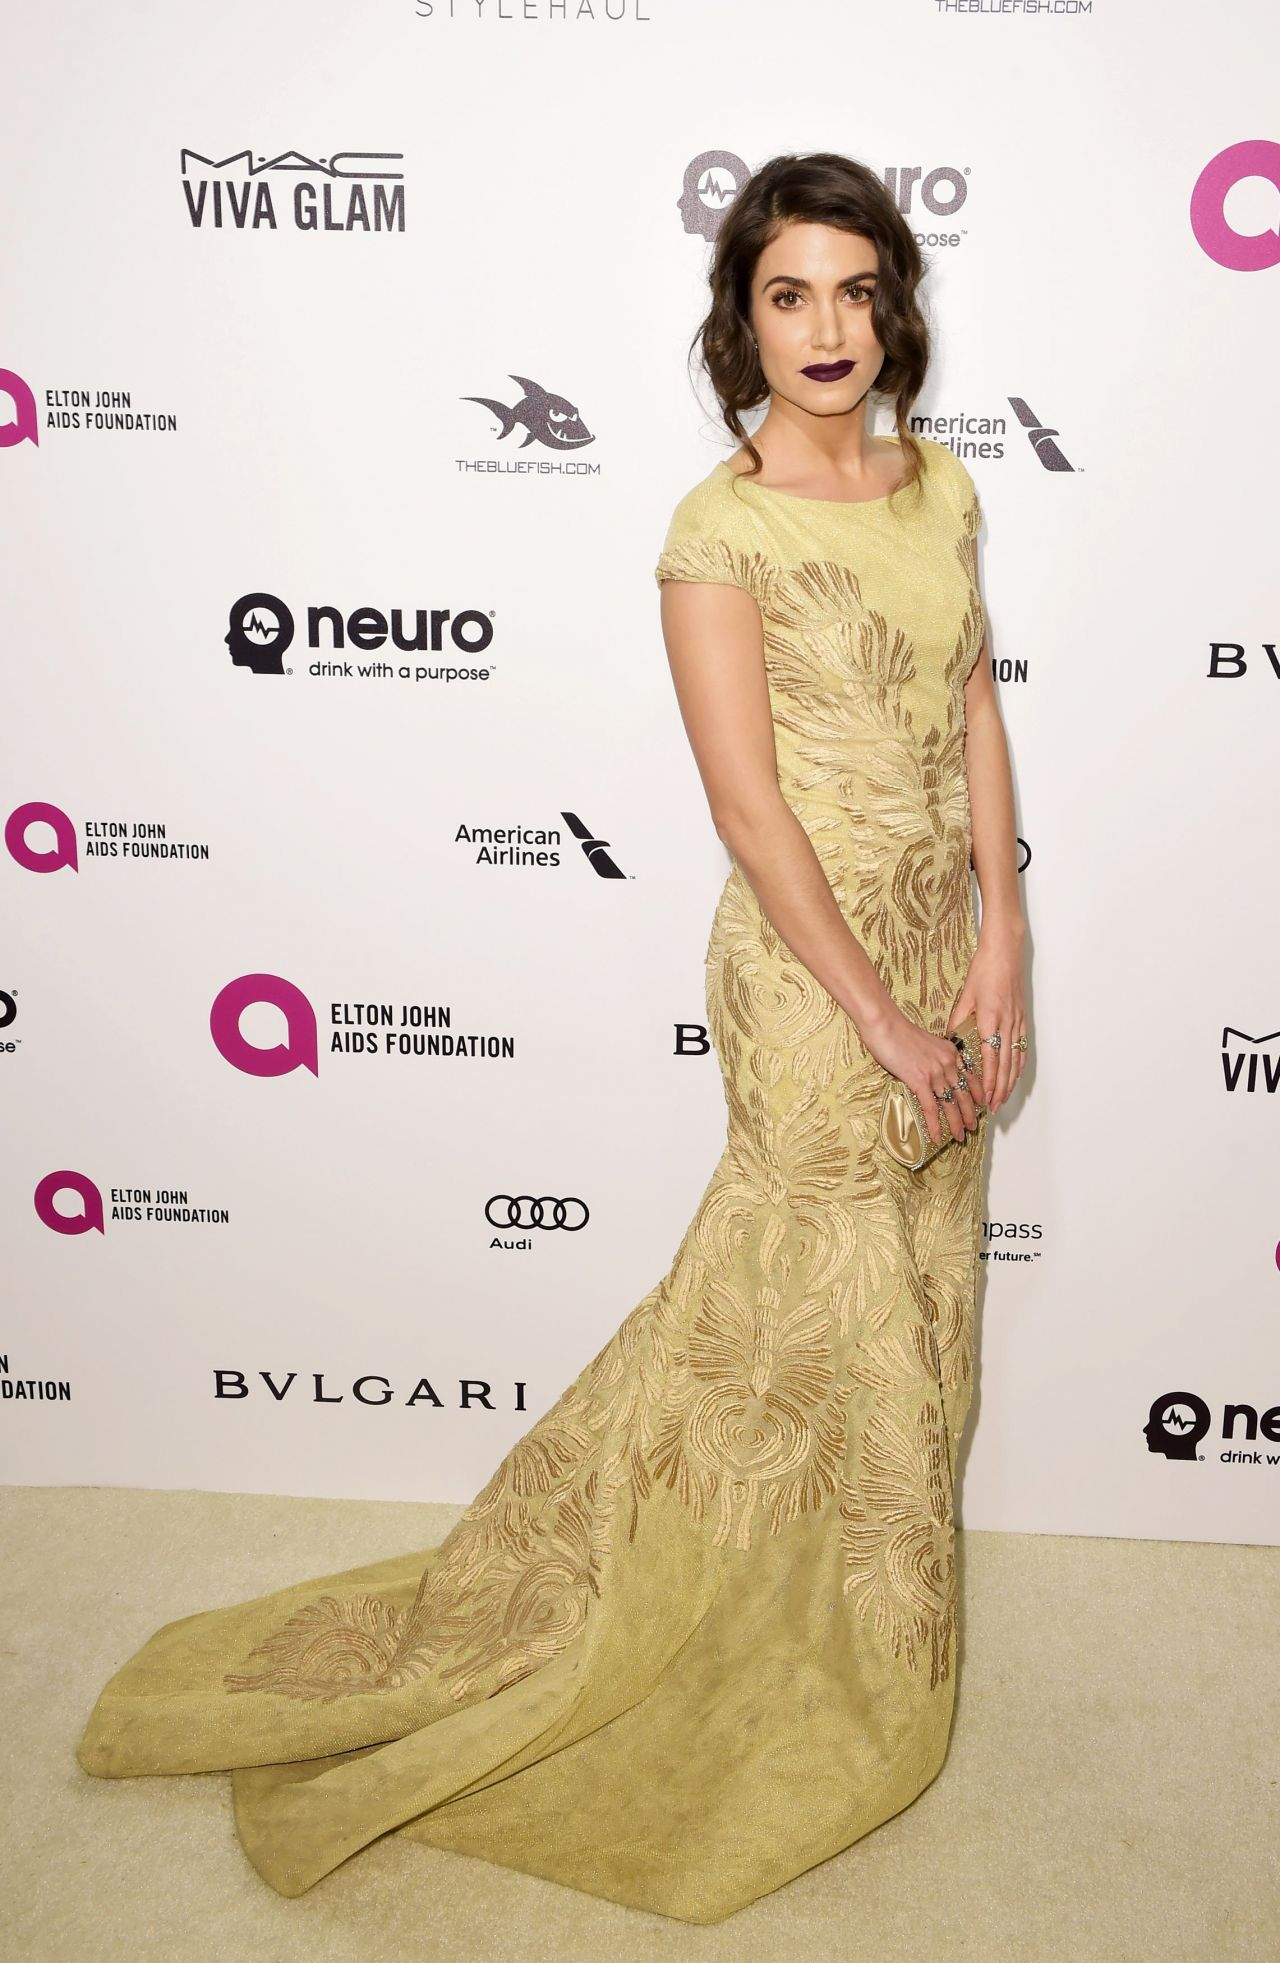 nikki-reed-2016-elton-john-aids-foundation-s-oscar-viewing-party-in-west-hollywood-ca-1